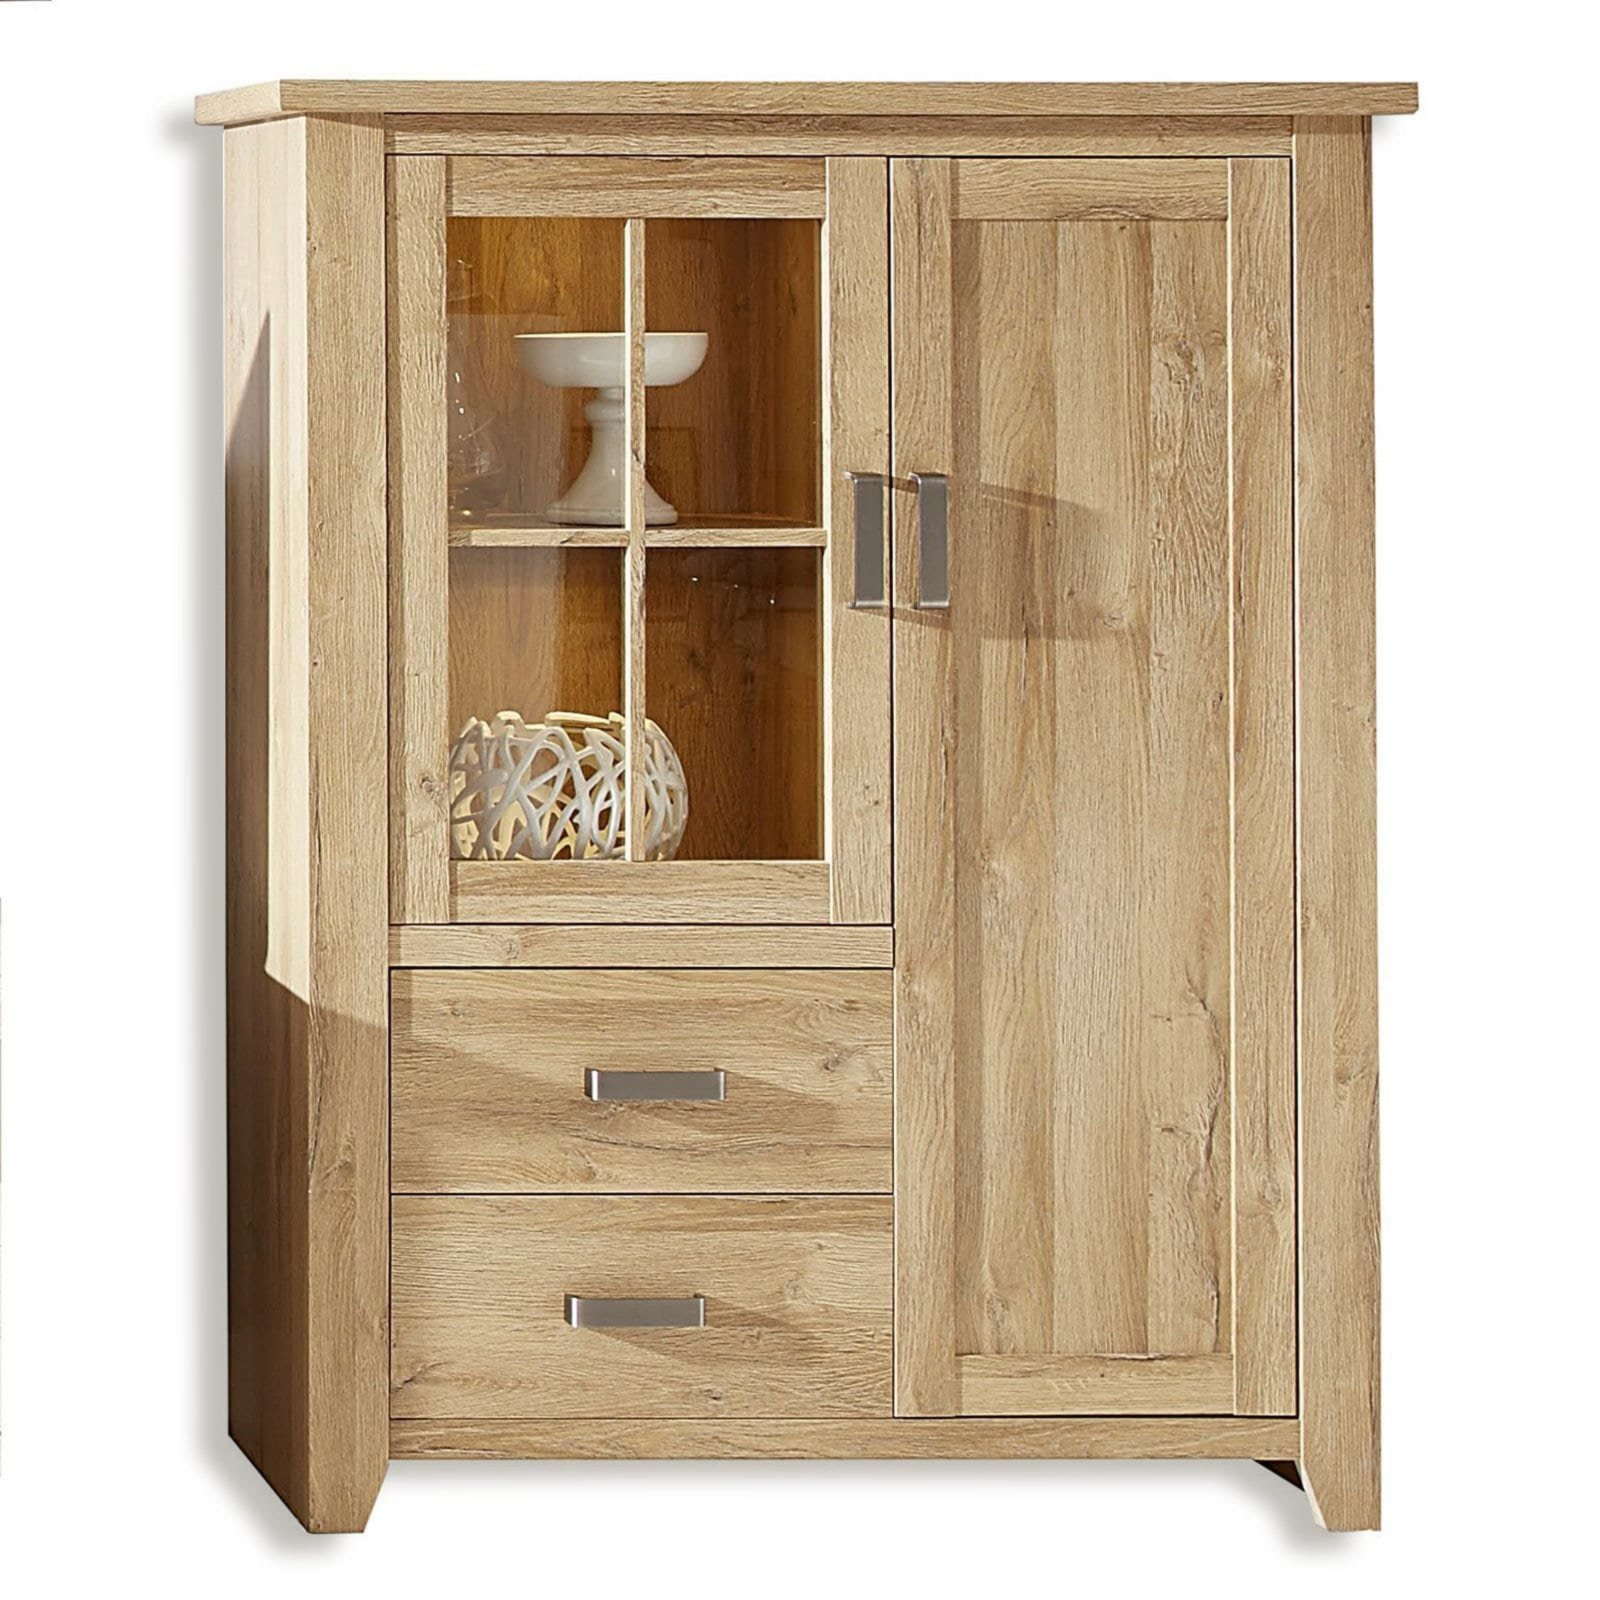 schrank 45 cm tief interesting weiss kommode in kaufen sie zum gnstigsten preis ein kommode cm. Black Bedroom Furniture Sets. Home Design Ideas